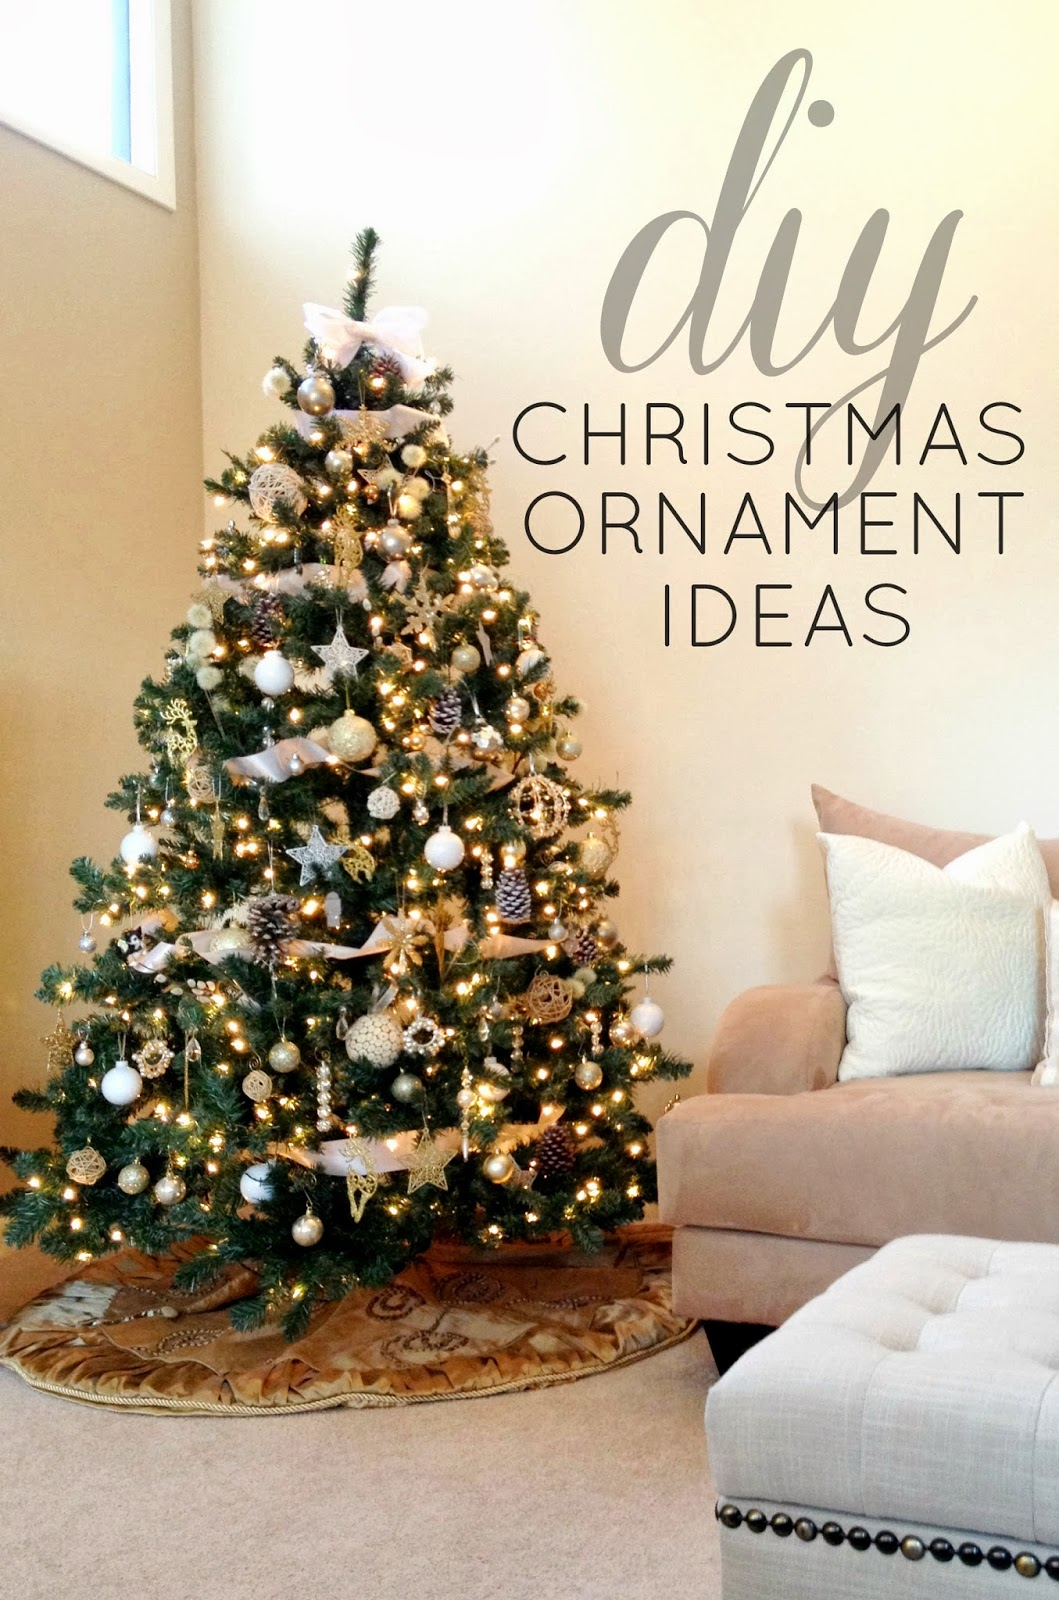 Livelovediy diy christmas ornaments ideas Christmas decorating diy